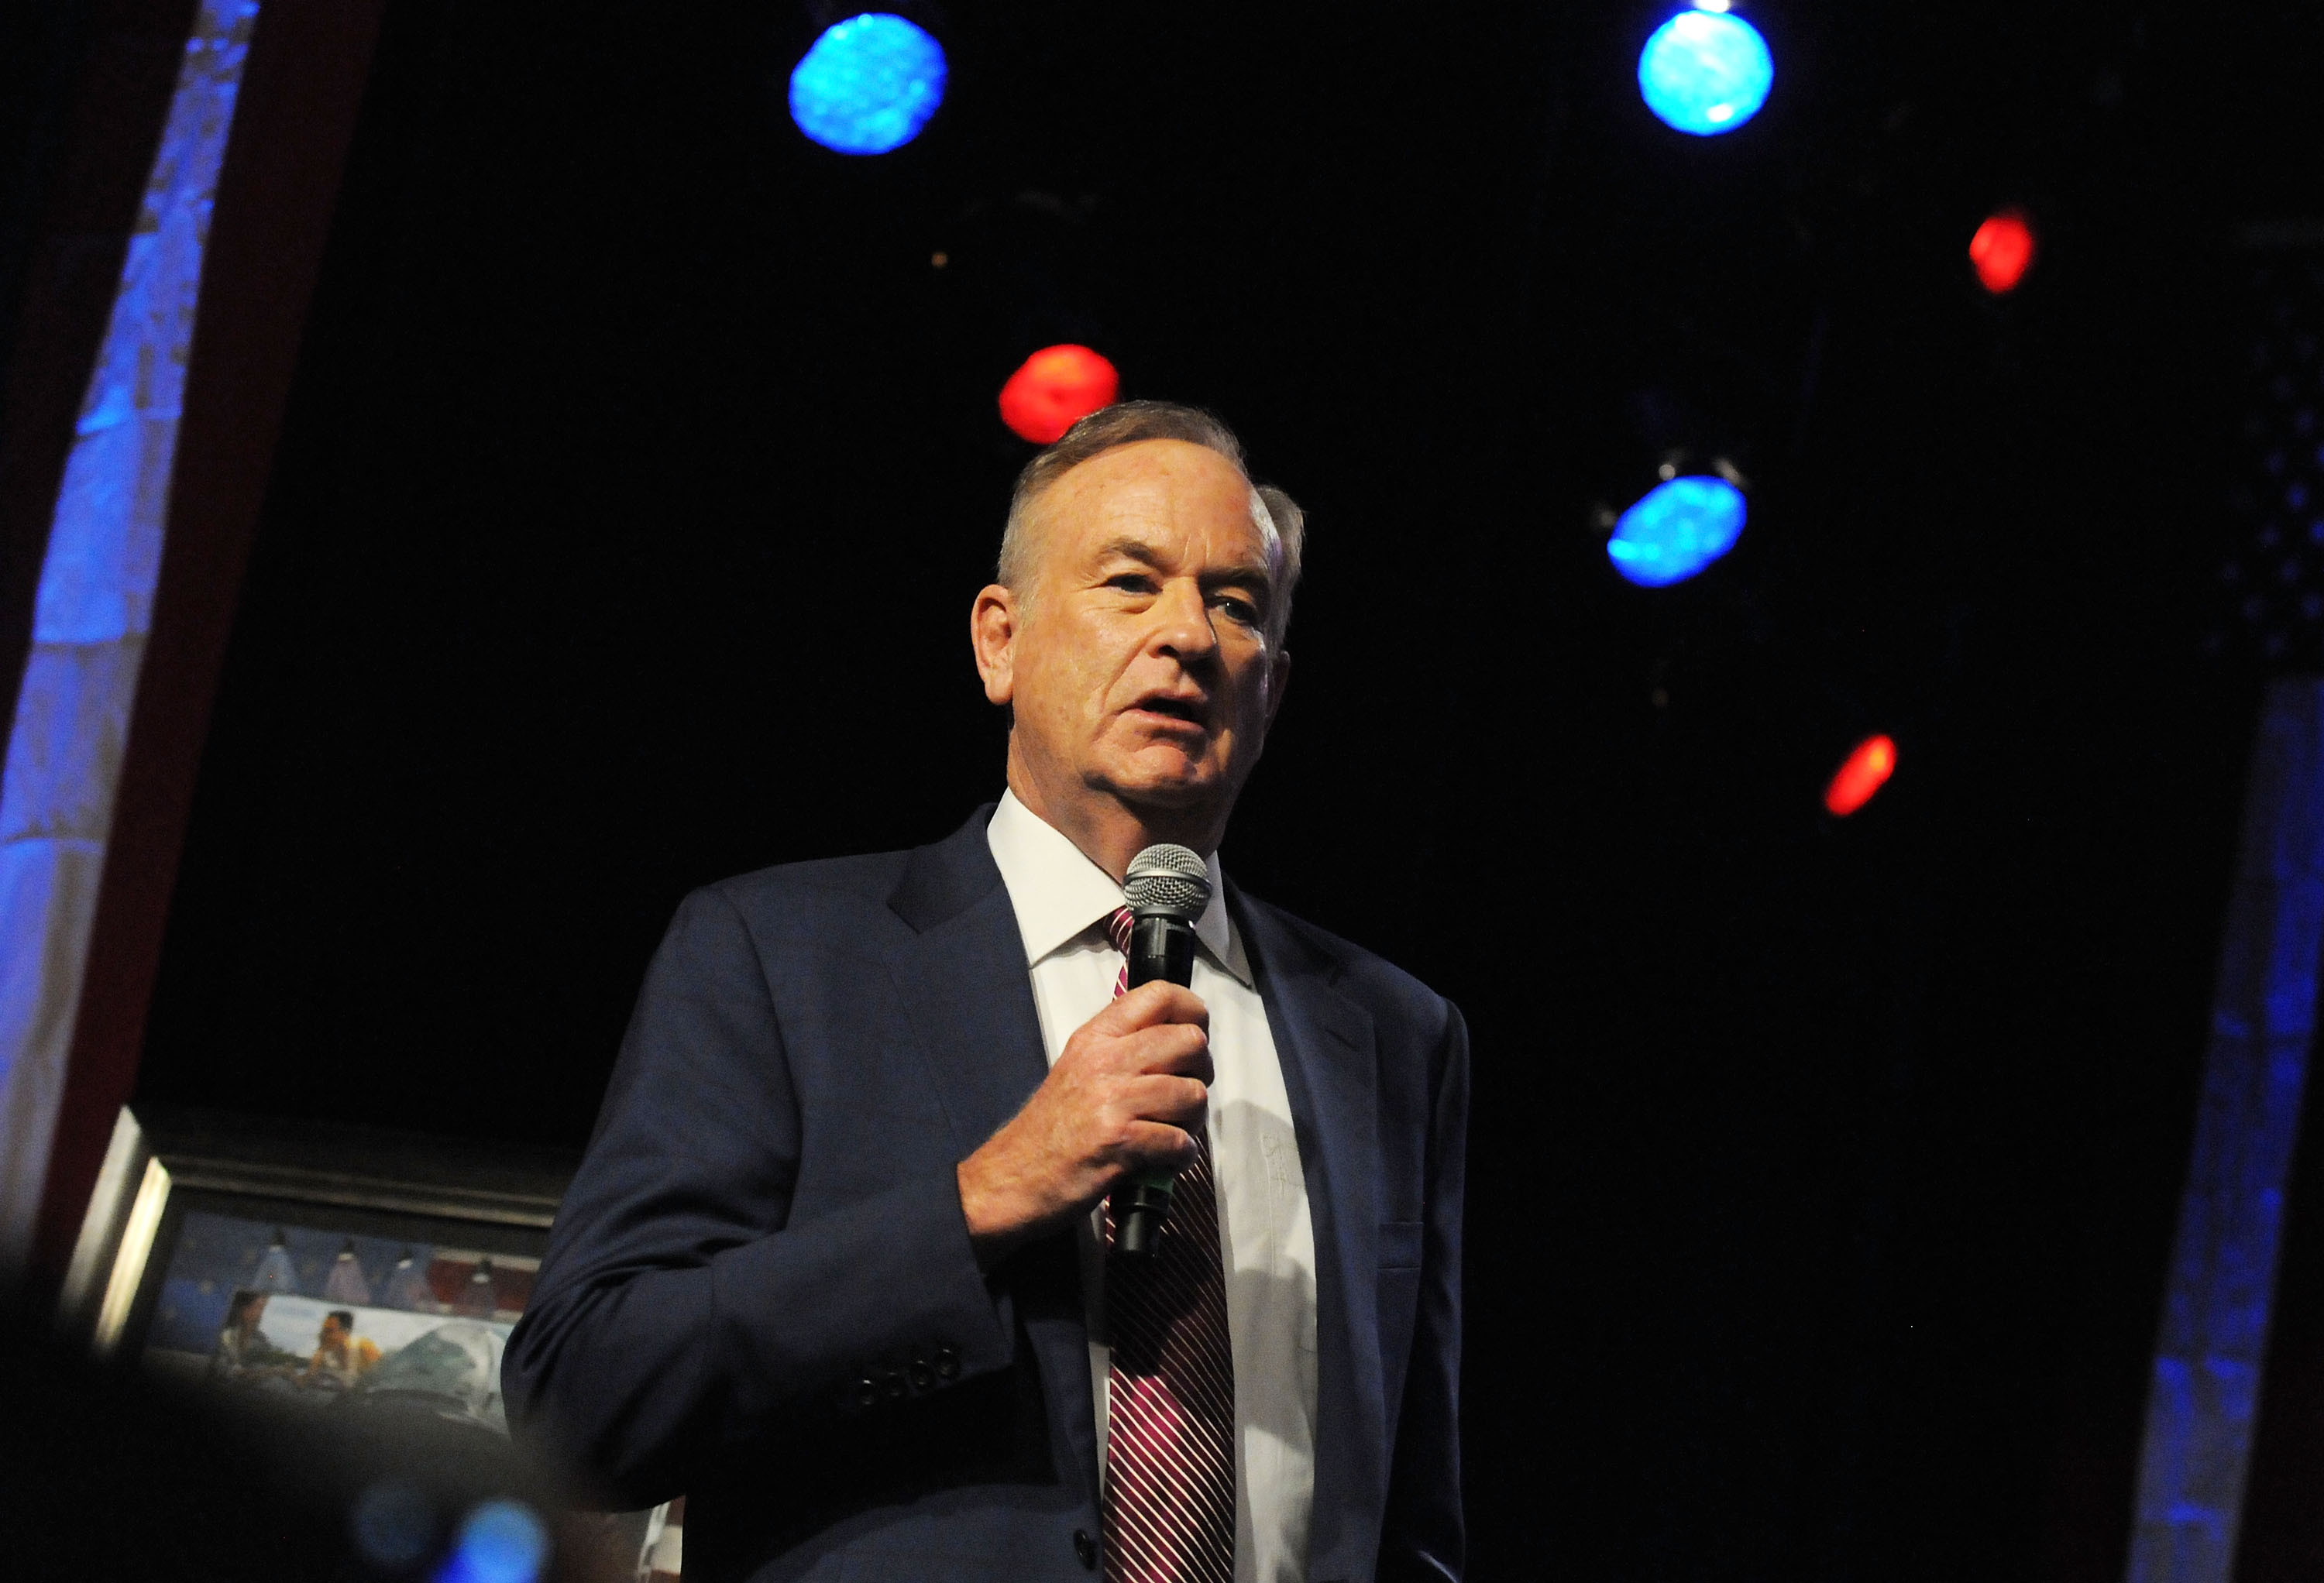 The Summer of Killer Immigrants, Brought to You by Bill O'Reilly